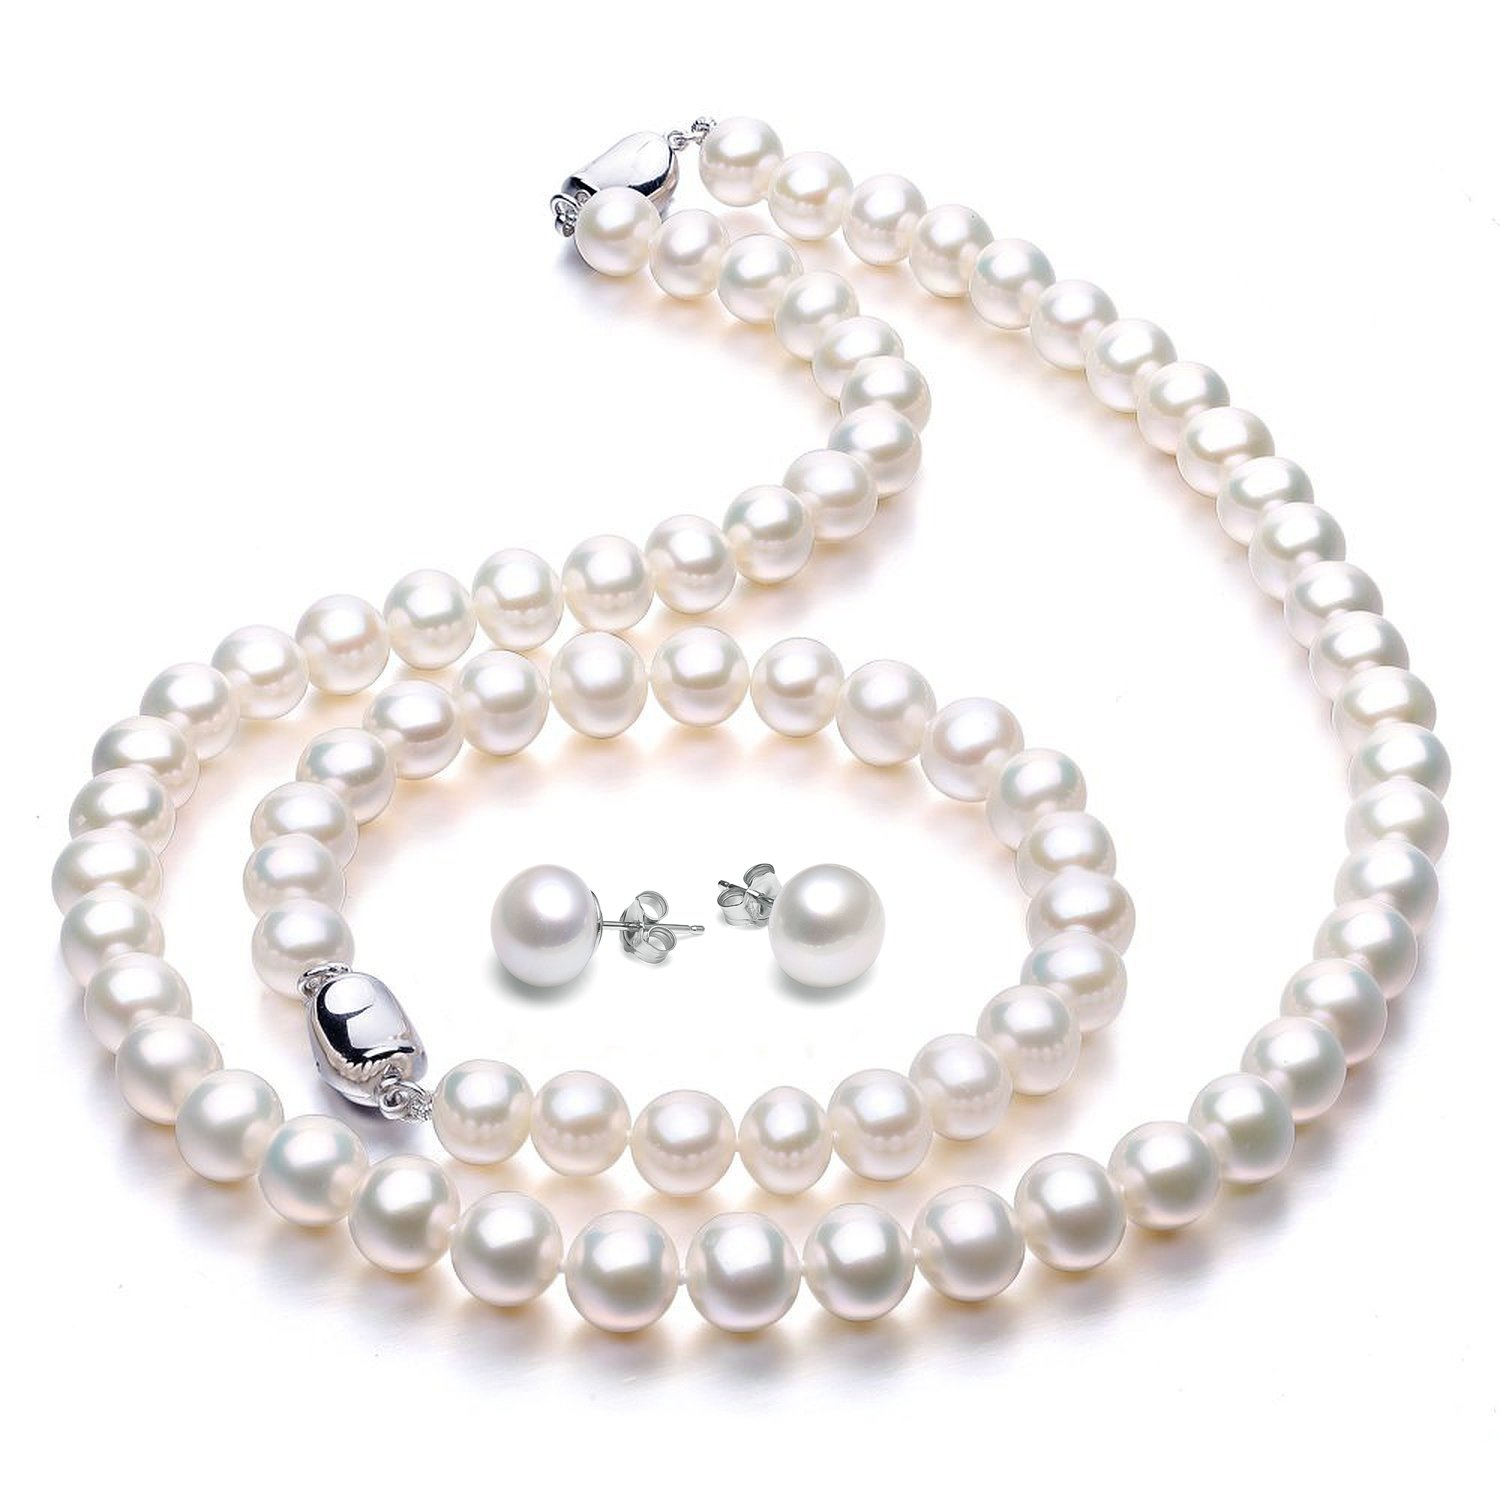 of wisdom blog facts pearls display jewellery about uk fascinating